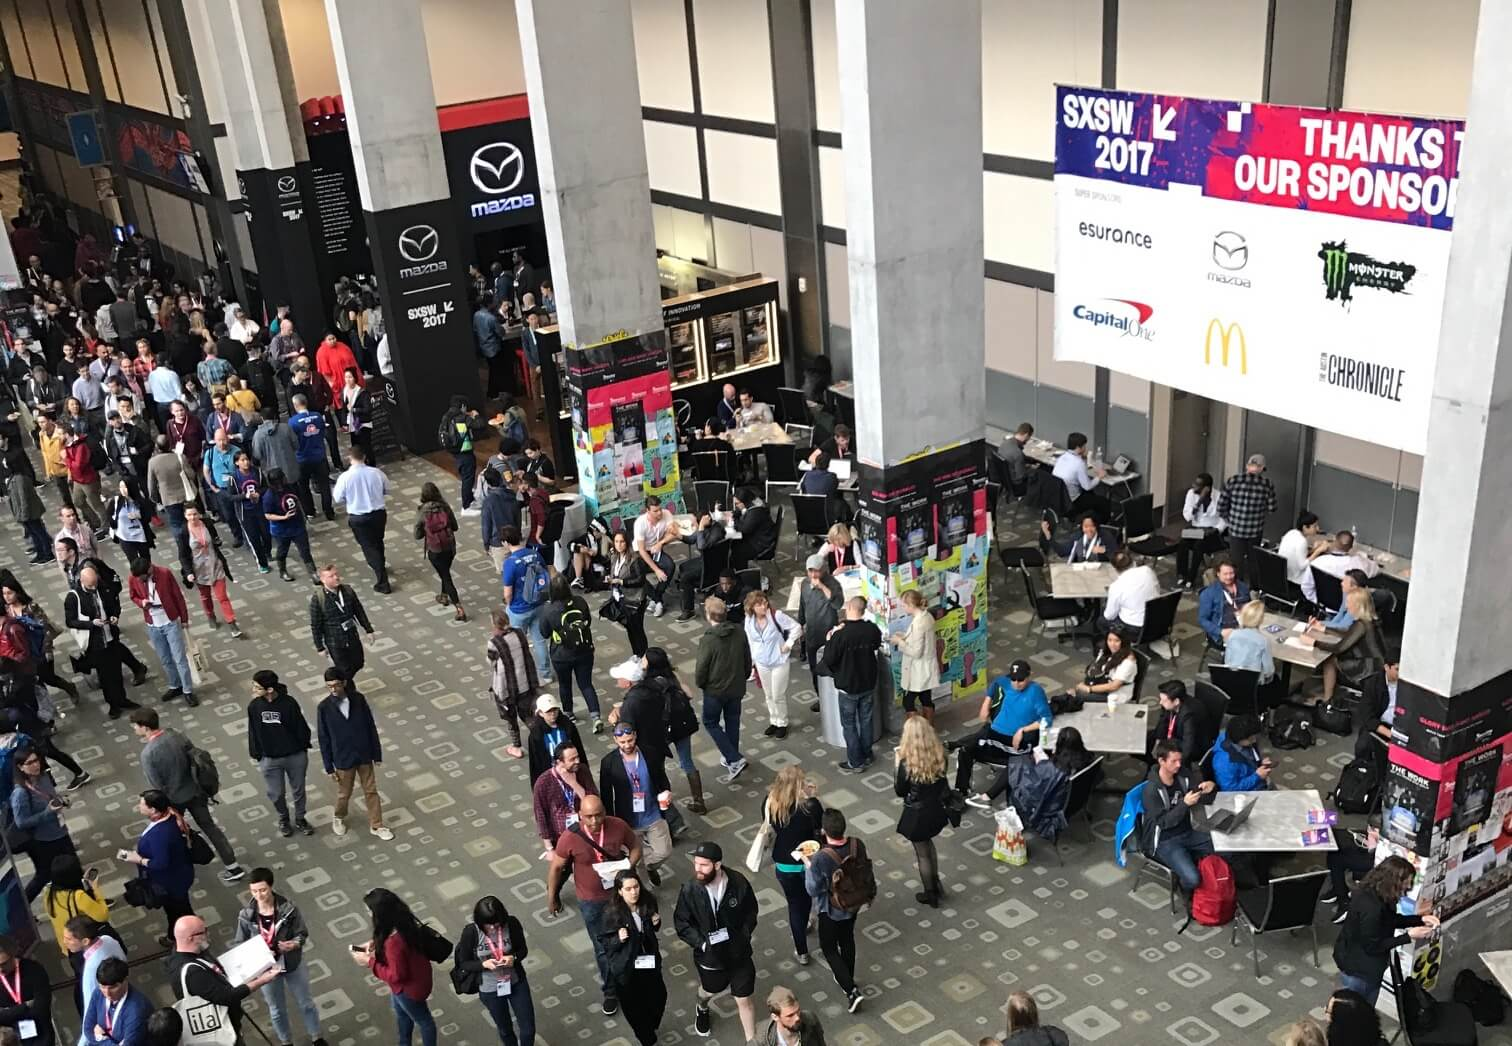 Impressions From My First SXSW: AI, AR/VR and Long Lines Everywhere